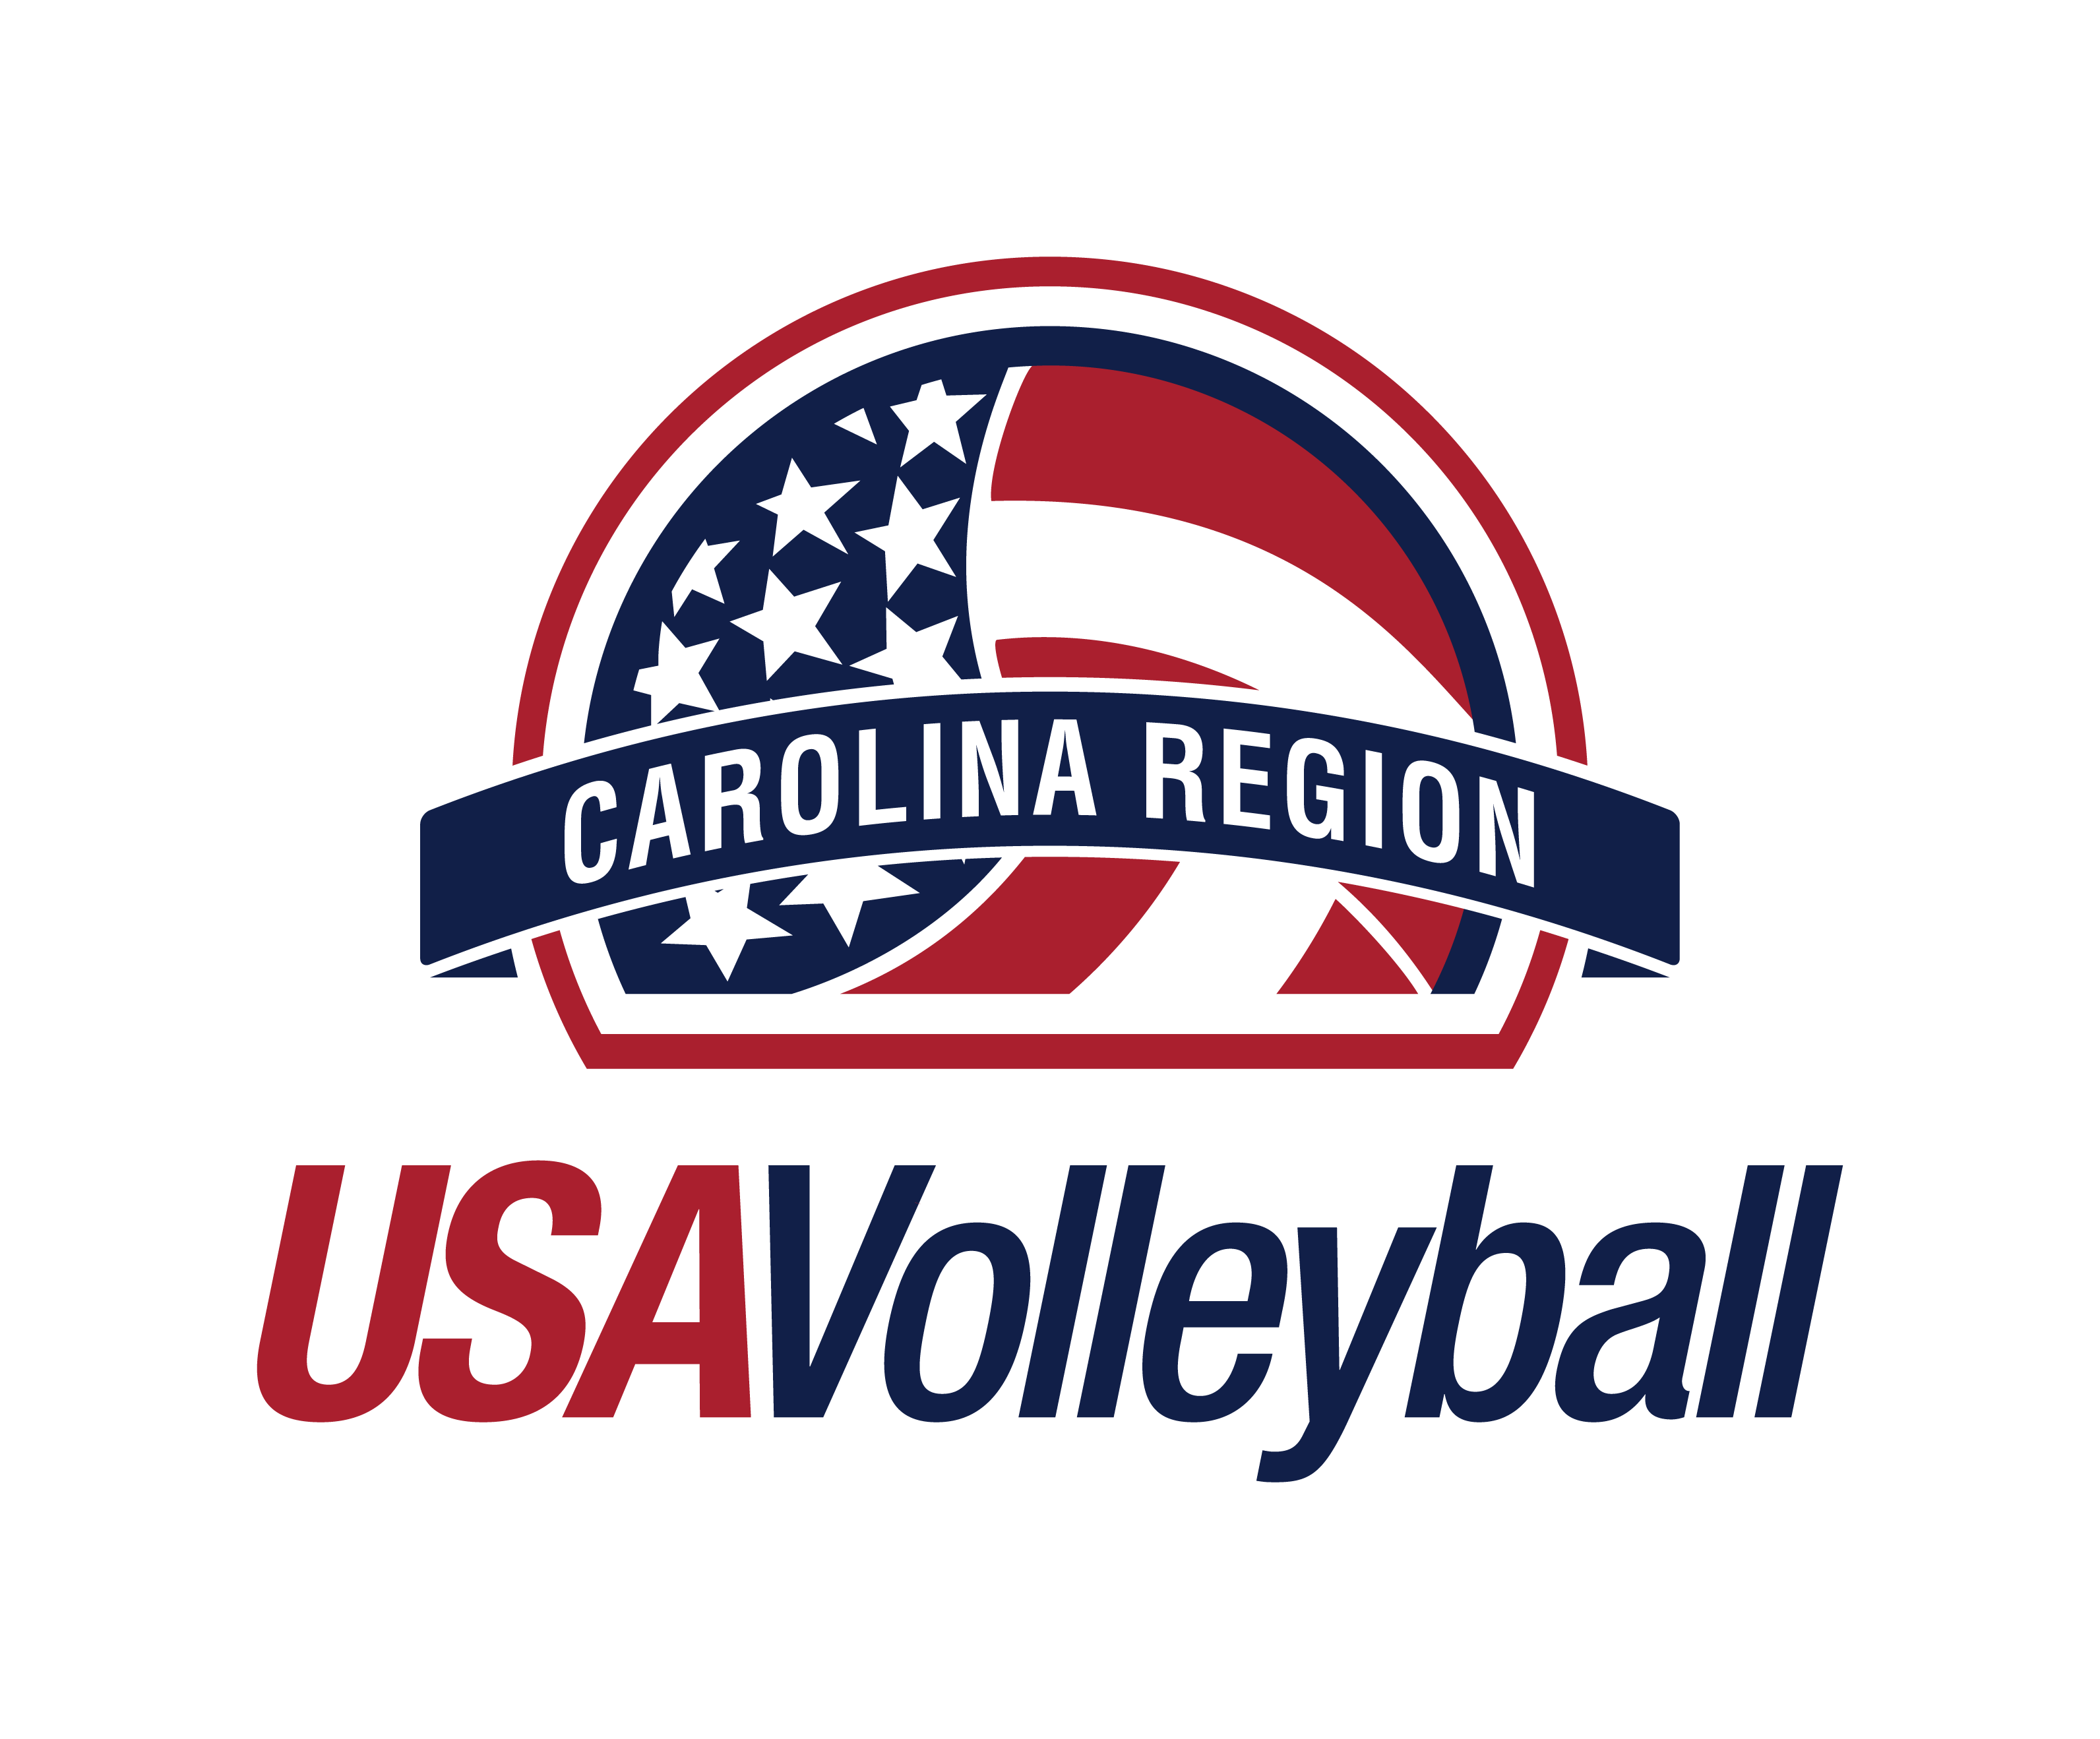 Carolina Region Volleyball